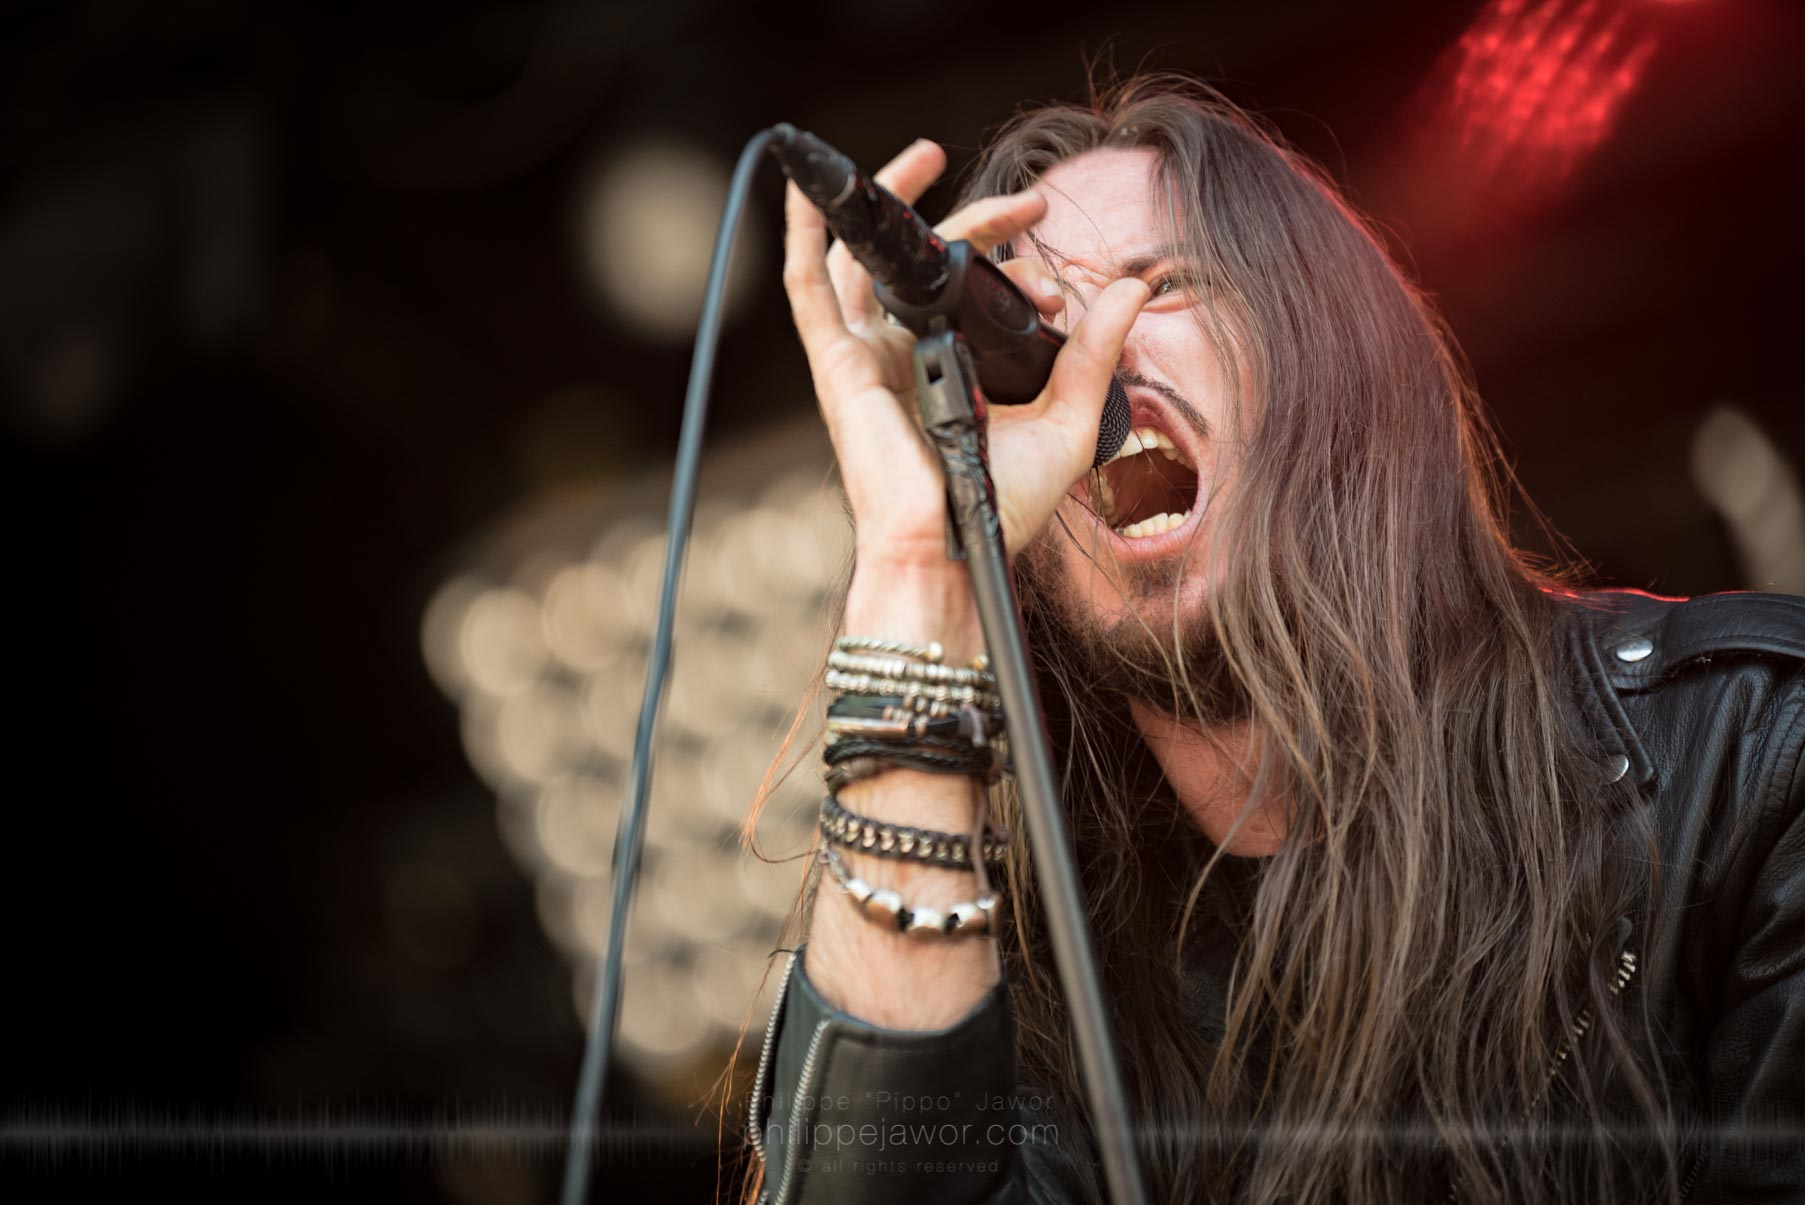 The French black metal band Regarde Les Hommes Tomber, live at Sylak Open Air festival, Saint Maurice de Gourdans, France, August 2017.  On assignment for Metal Obs' Magazine All rights reserved.